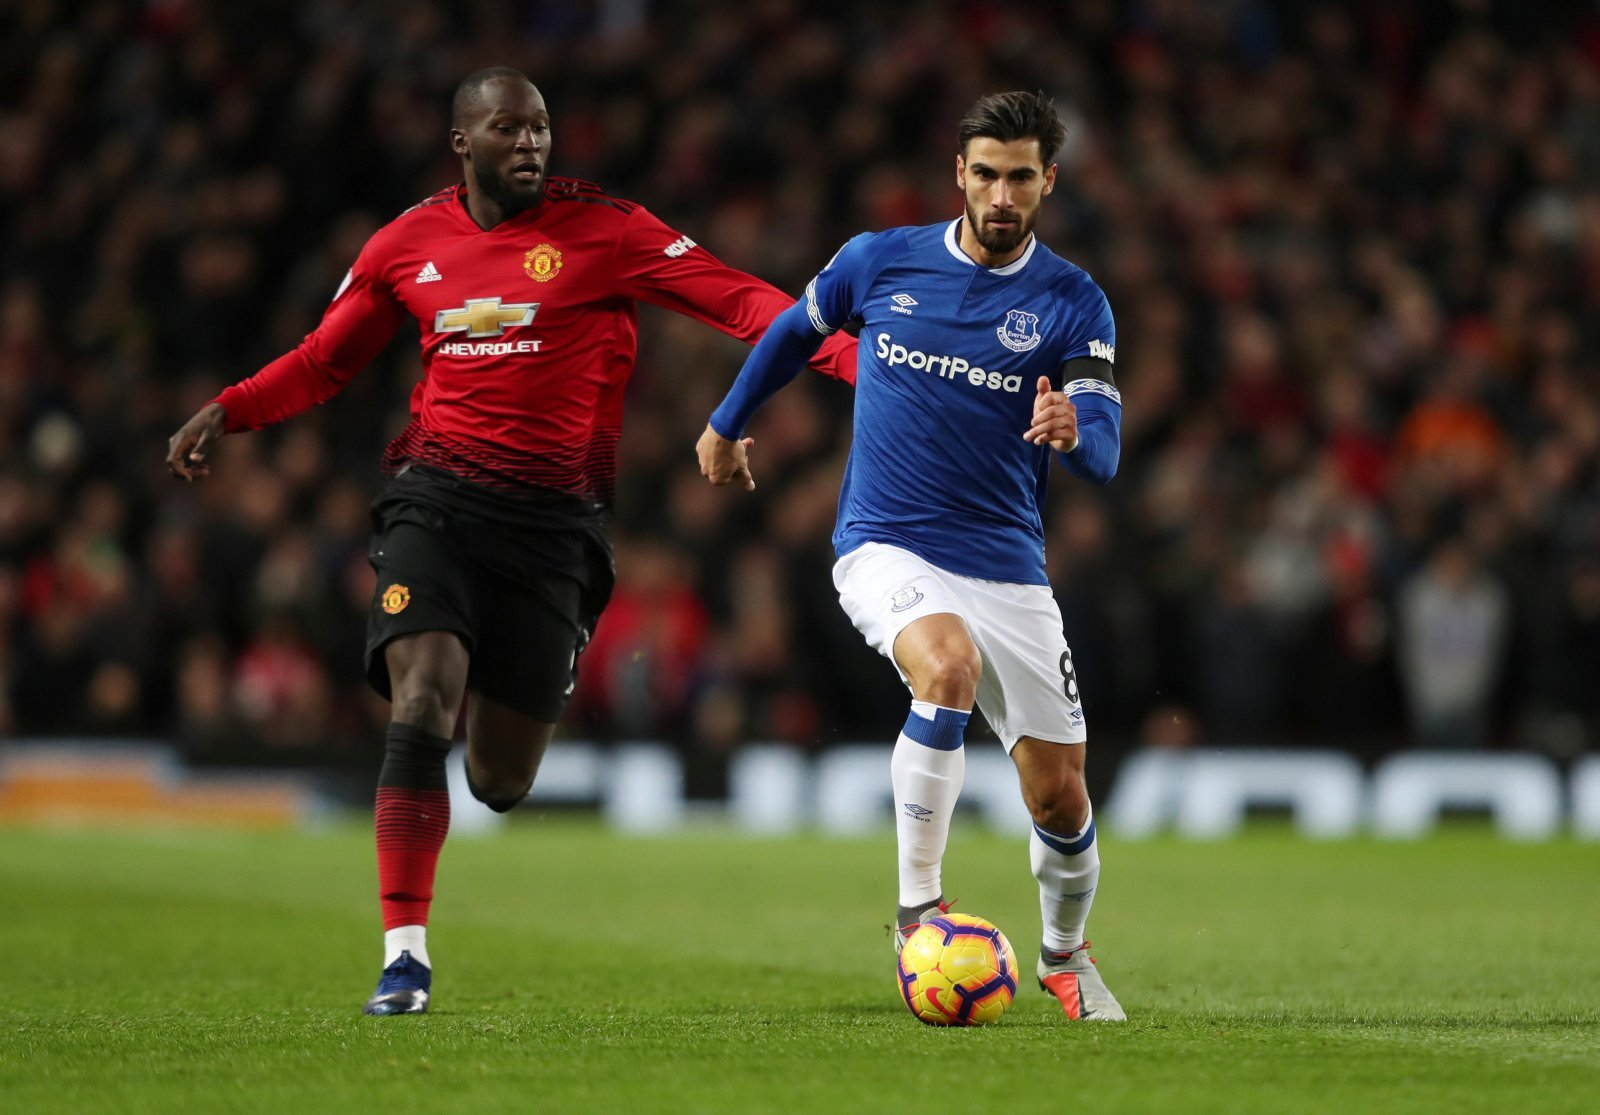 Everton fans take to Twitter to beg Andre Gomes for a win